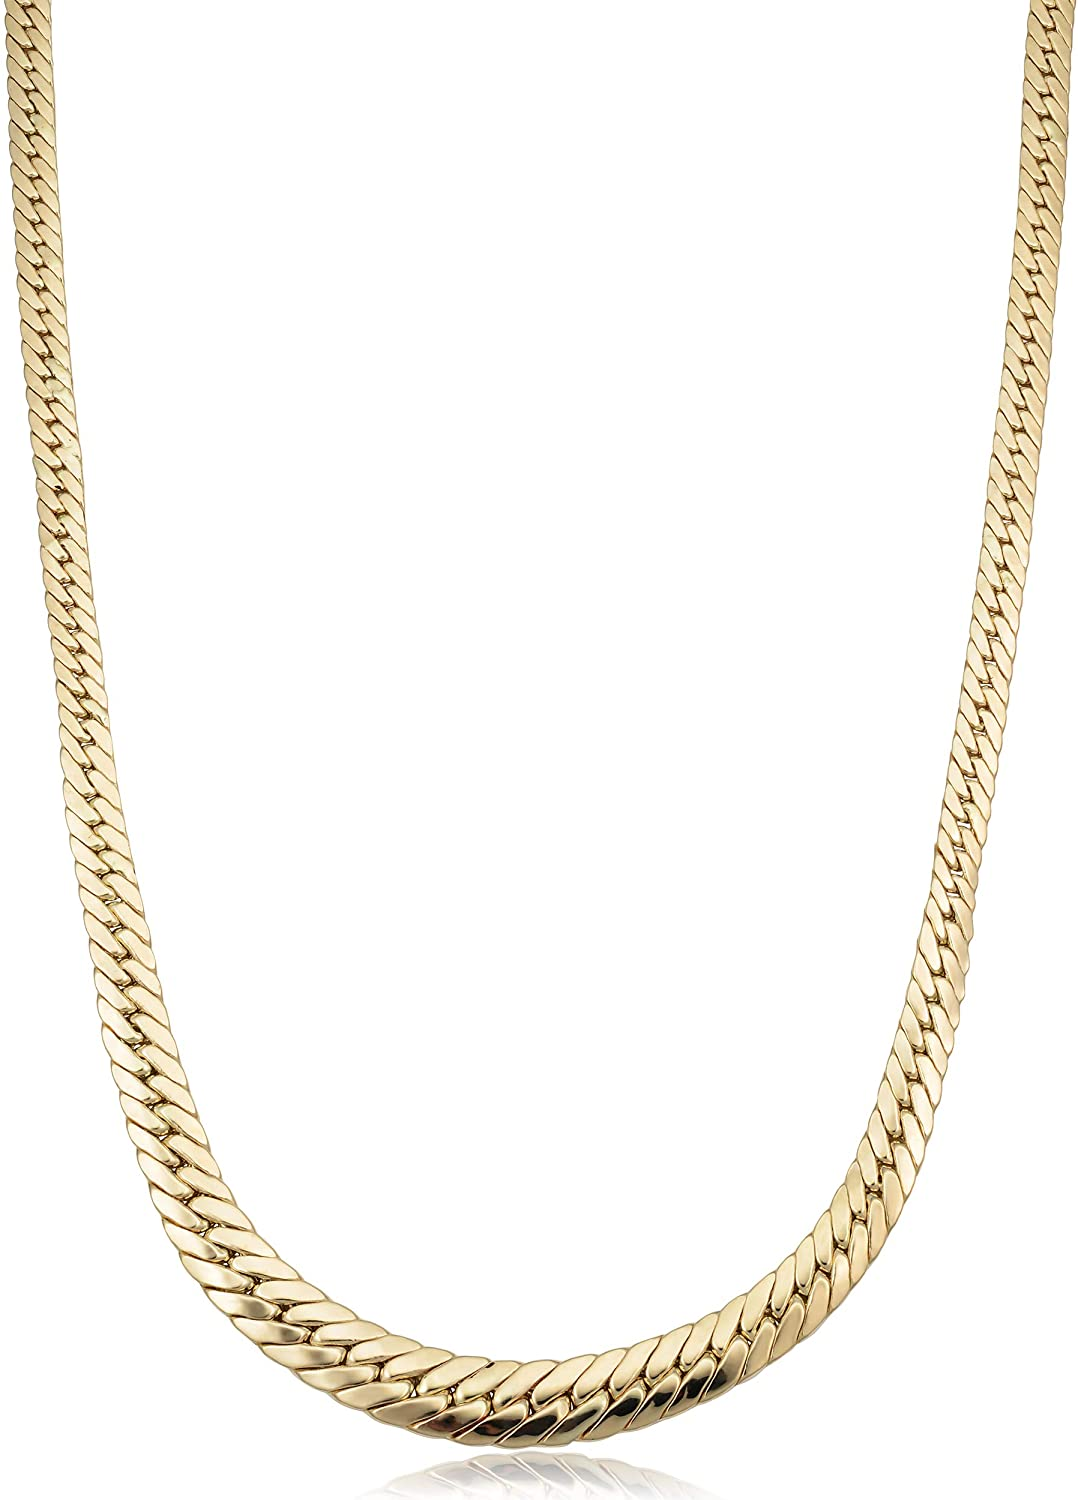 Kooljewelry 14k Yellow Gold Graduated Cuban Curb Link Necklace (17.5 inch)